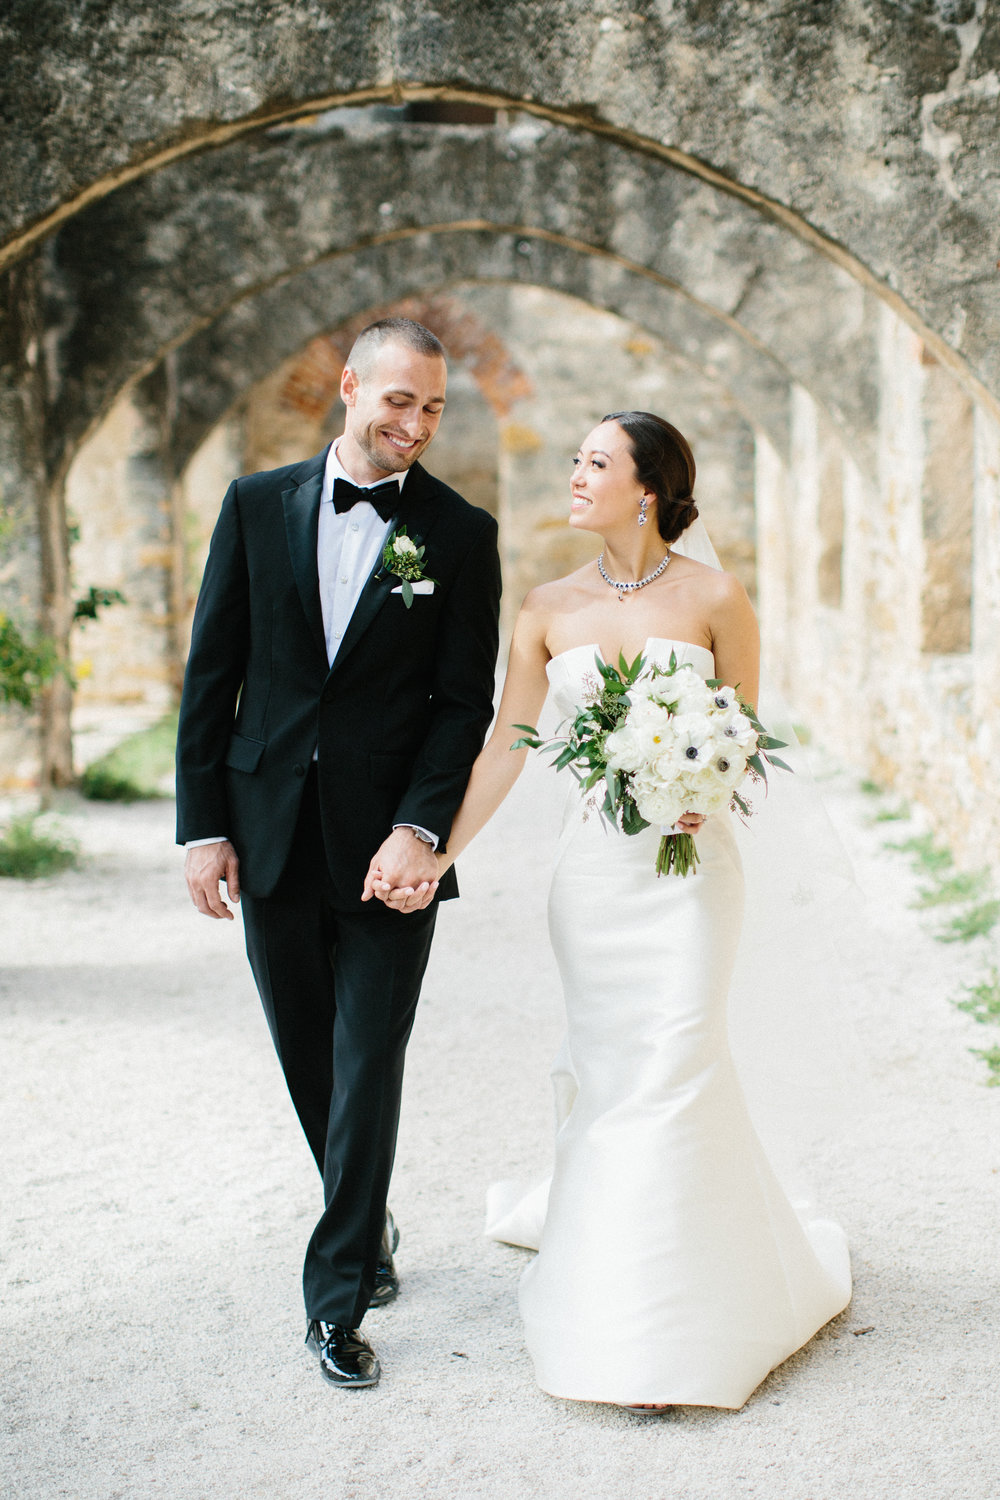 San Antonio Missions Wedding -- Virginia Ann Photography -74.jpg